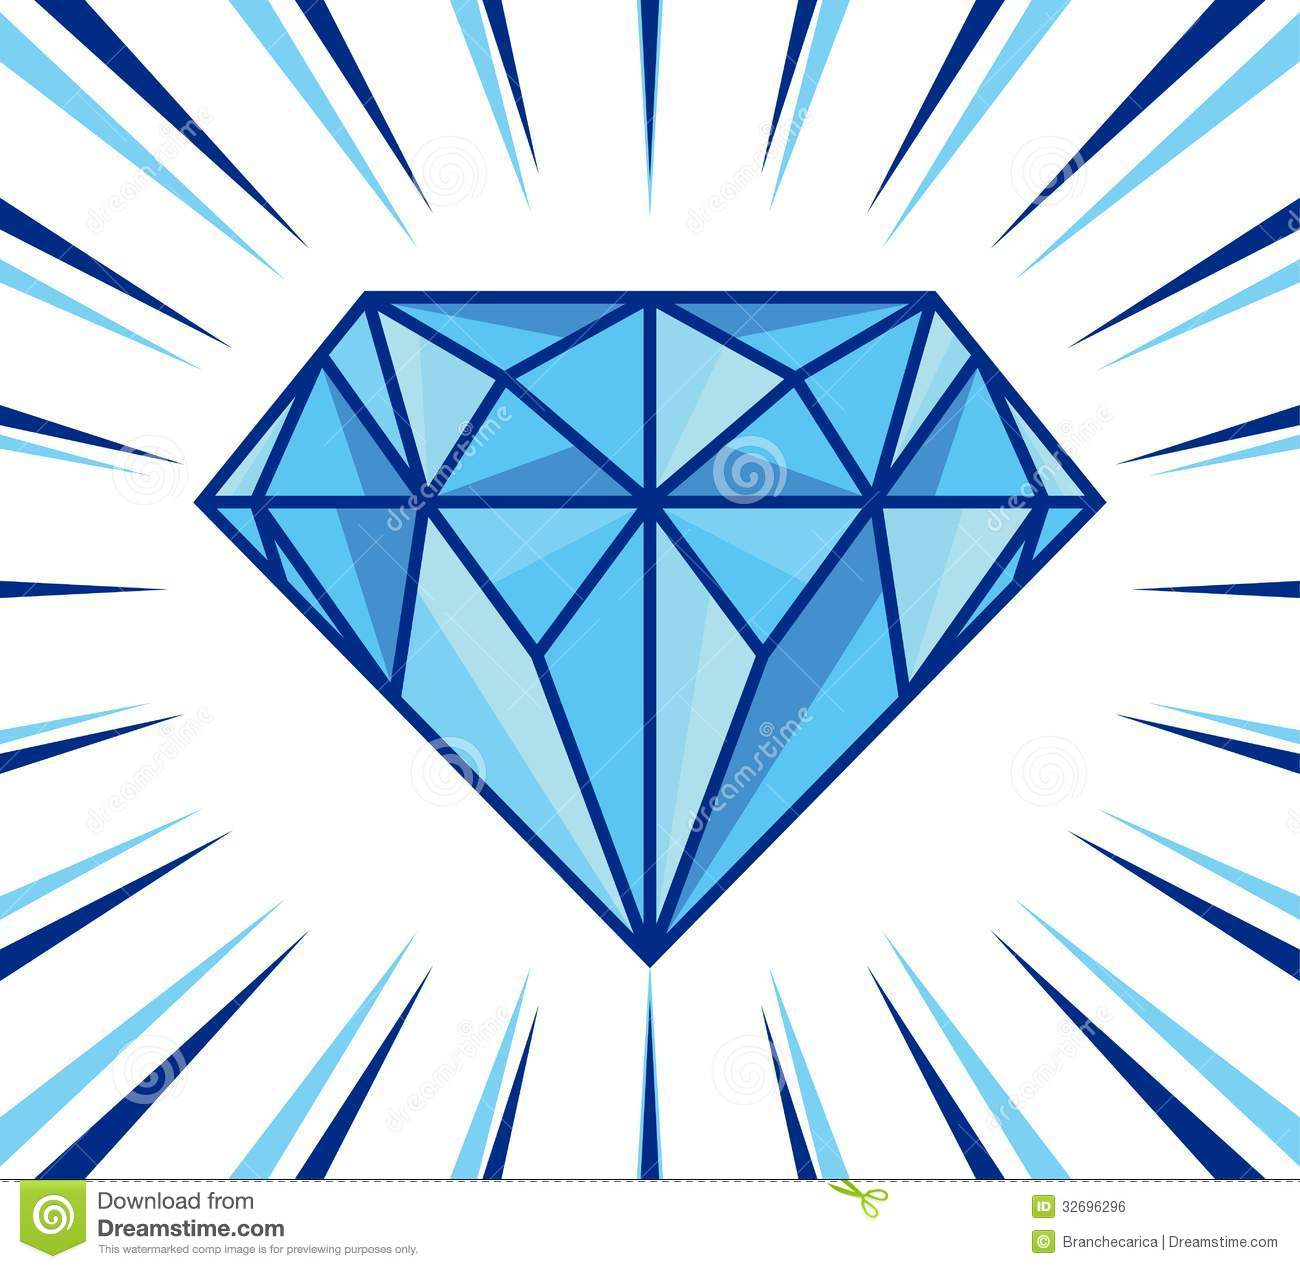 Diamond Shine Royalty Free Stock Image - Image: 32696296